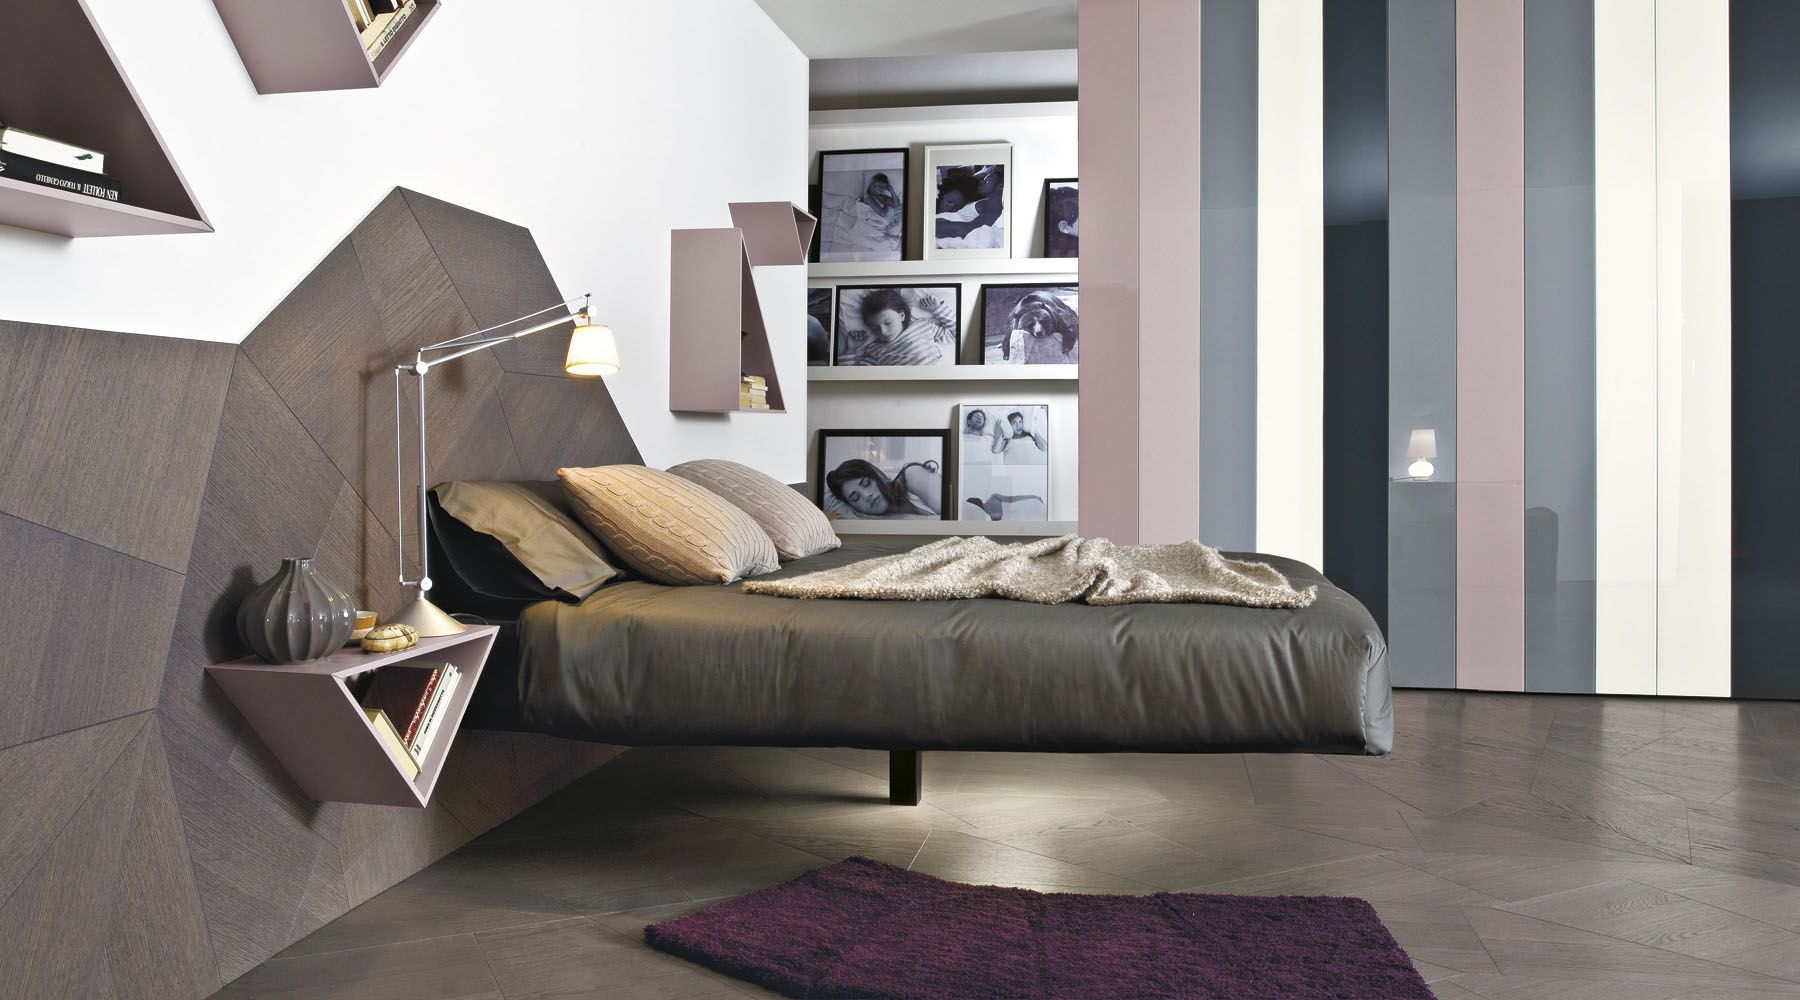 Air Bed | Bed design, Bedrooms and Lights